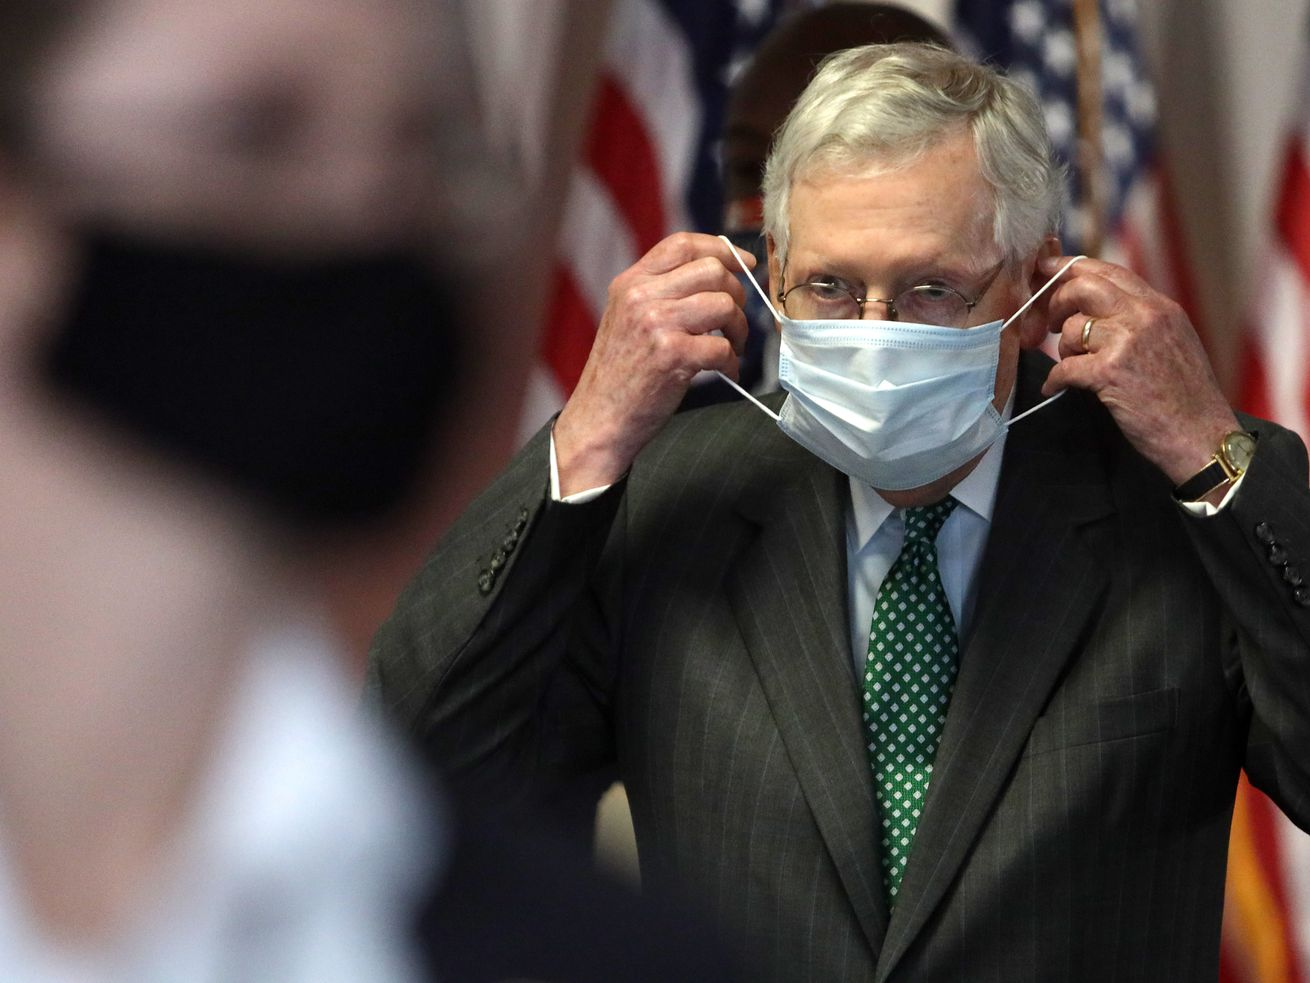 Republicans, with exception of Trump, now push mask-wearing to fight coronavirus